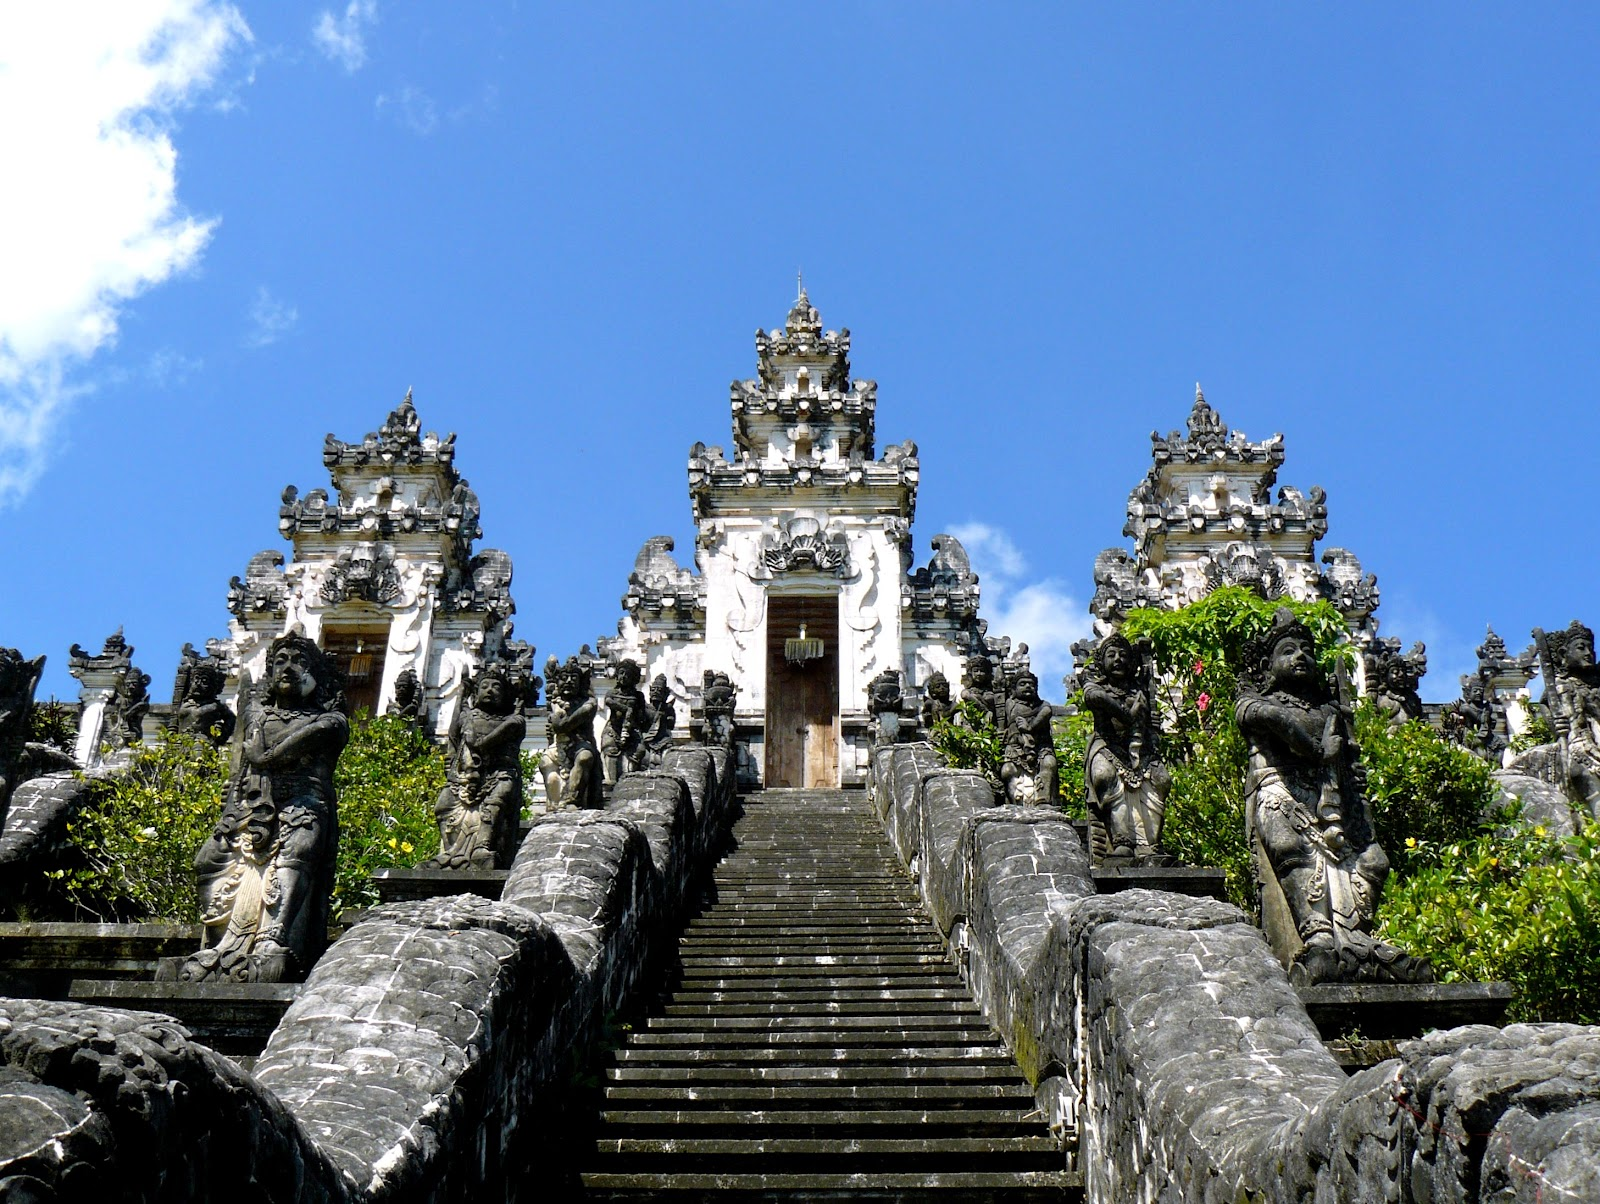 candi dasa buddhist temple whitewashed stone architecture traditional balinese statues and stairs on sunny day bali indonesia